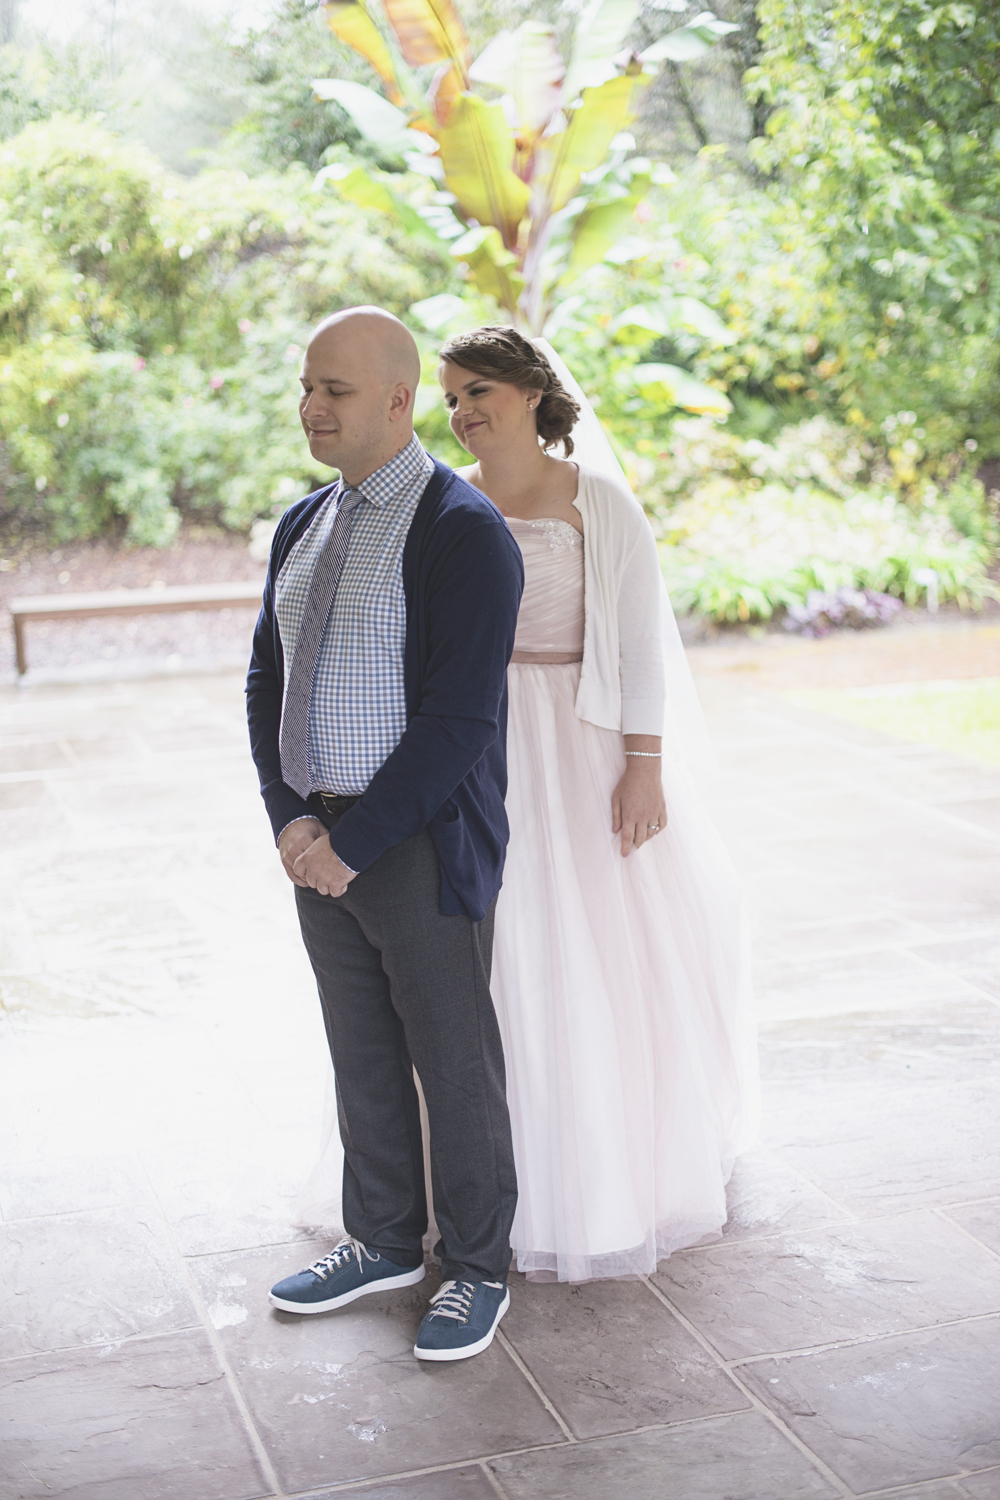 Lewis Ginter Botanic Garden Wedding | Richmond, Virginia, Wedding | Bride and groom first look